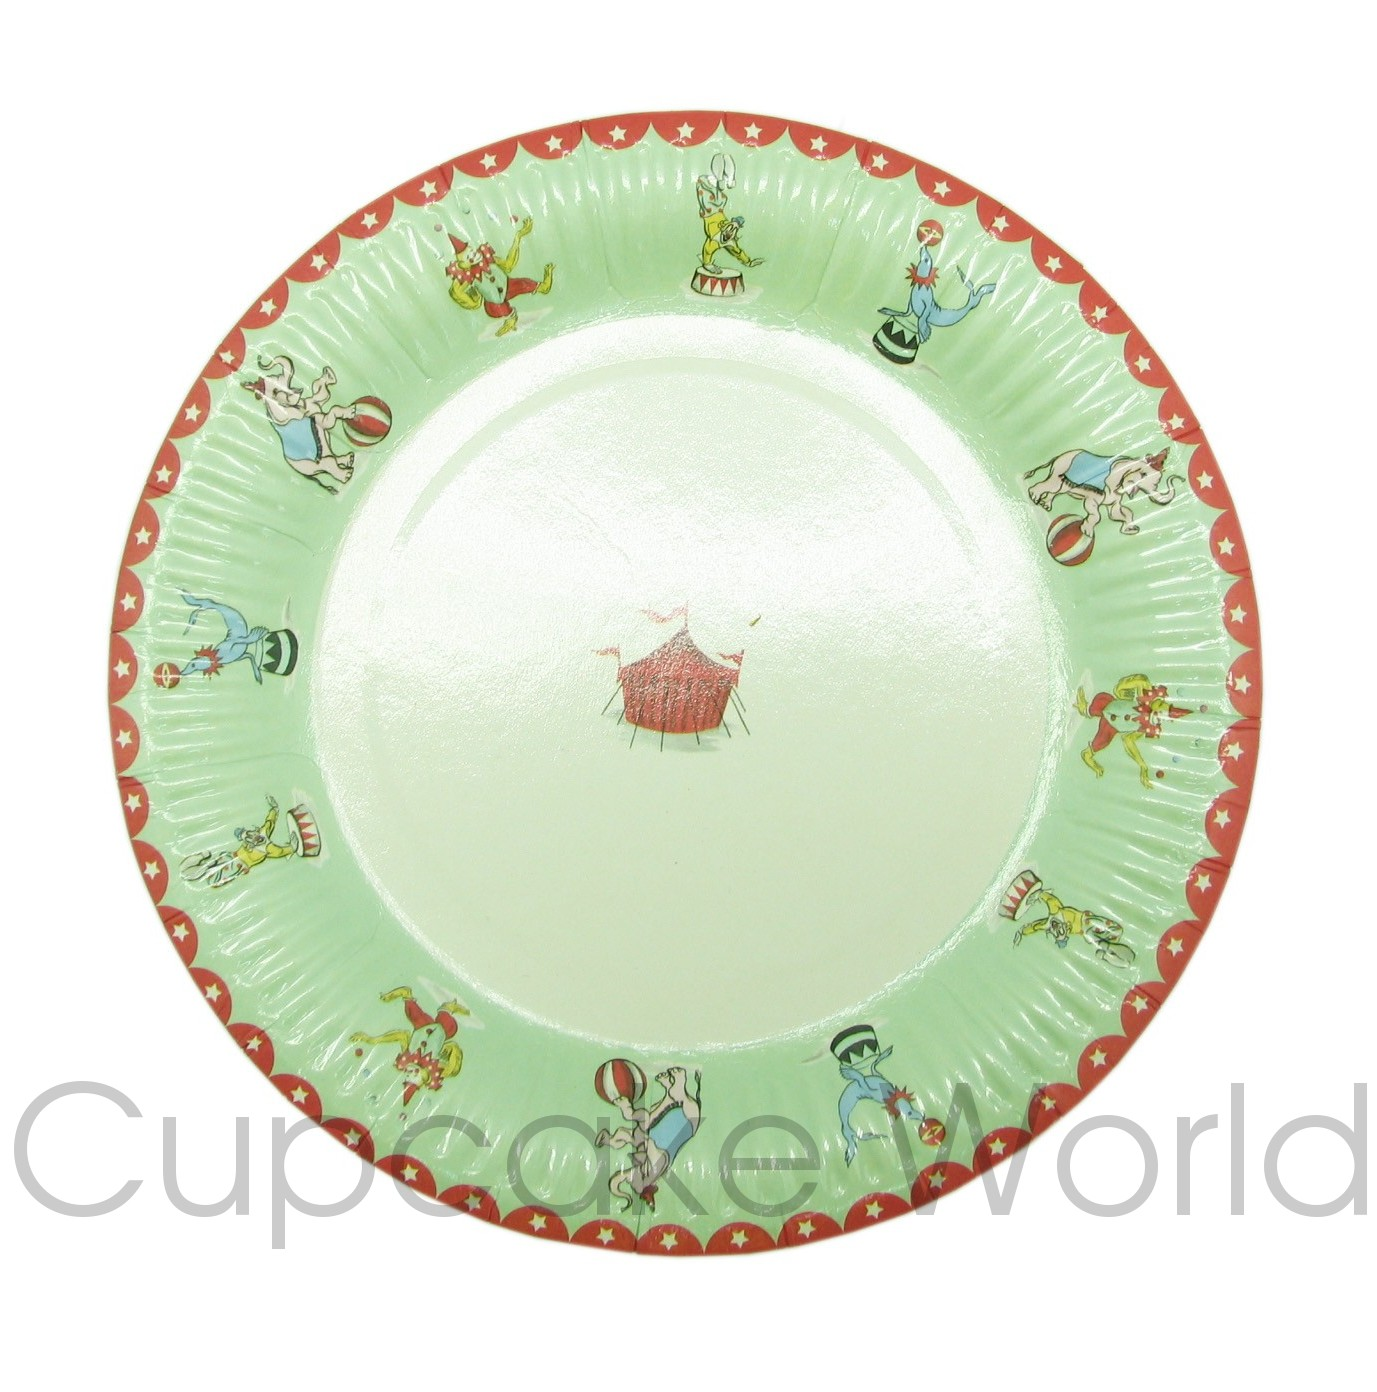 ROBERT GORDON LITTLE CIRCUS PAPER PARTY PLATES 12PK!!